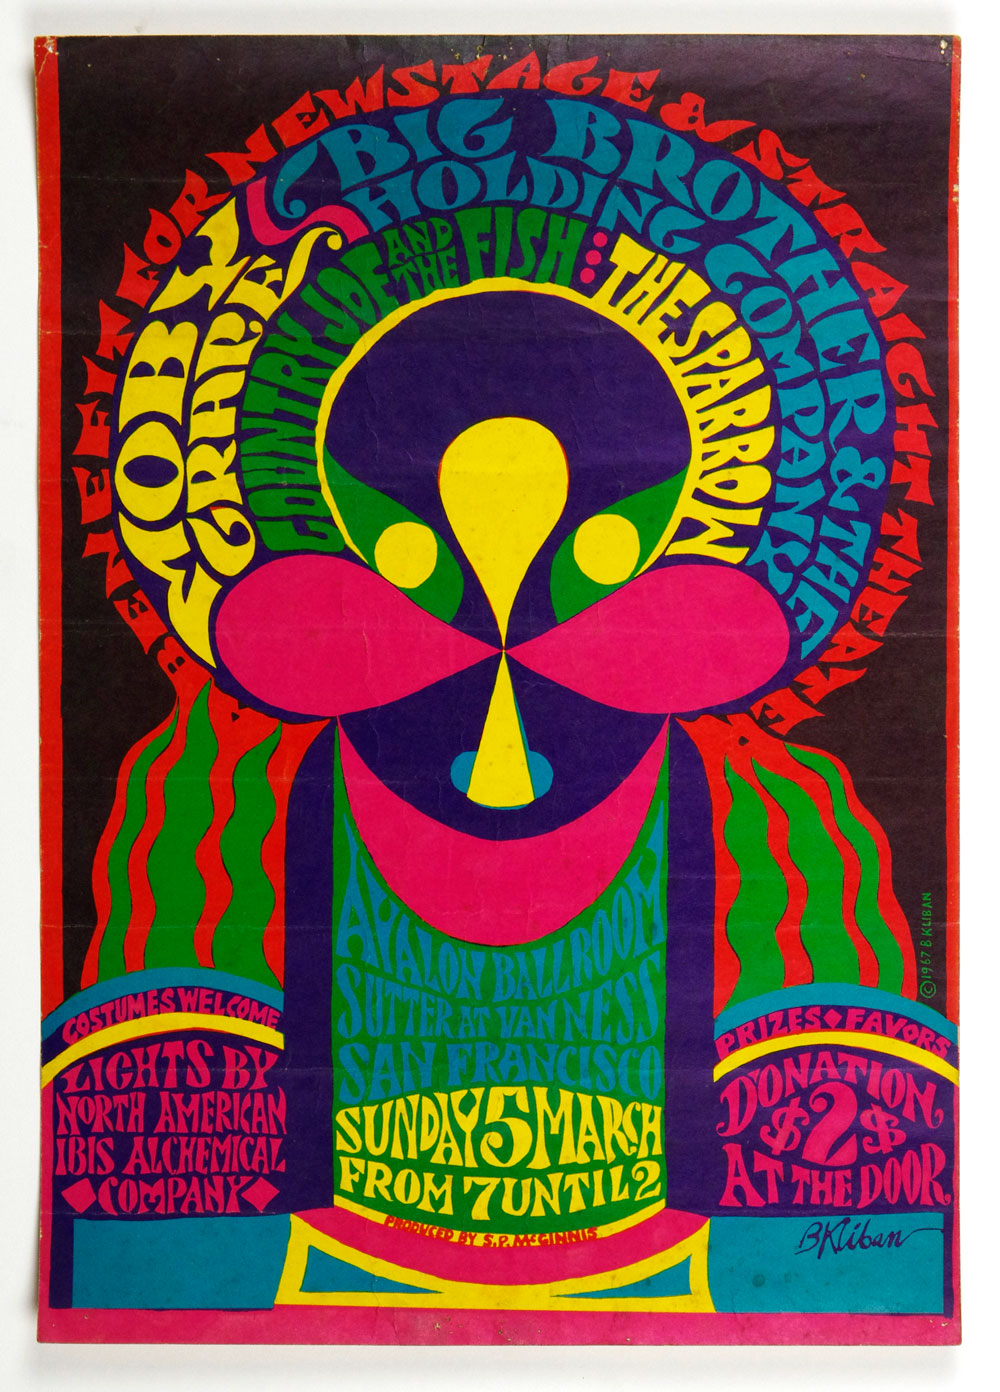 Avalon Ballroom Poster 1967 Mar 5 Moby Grape Big Brother and Holding Company